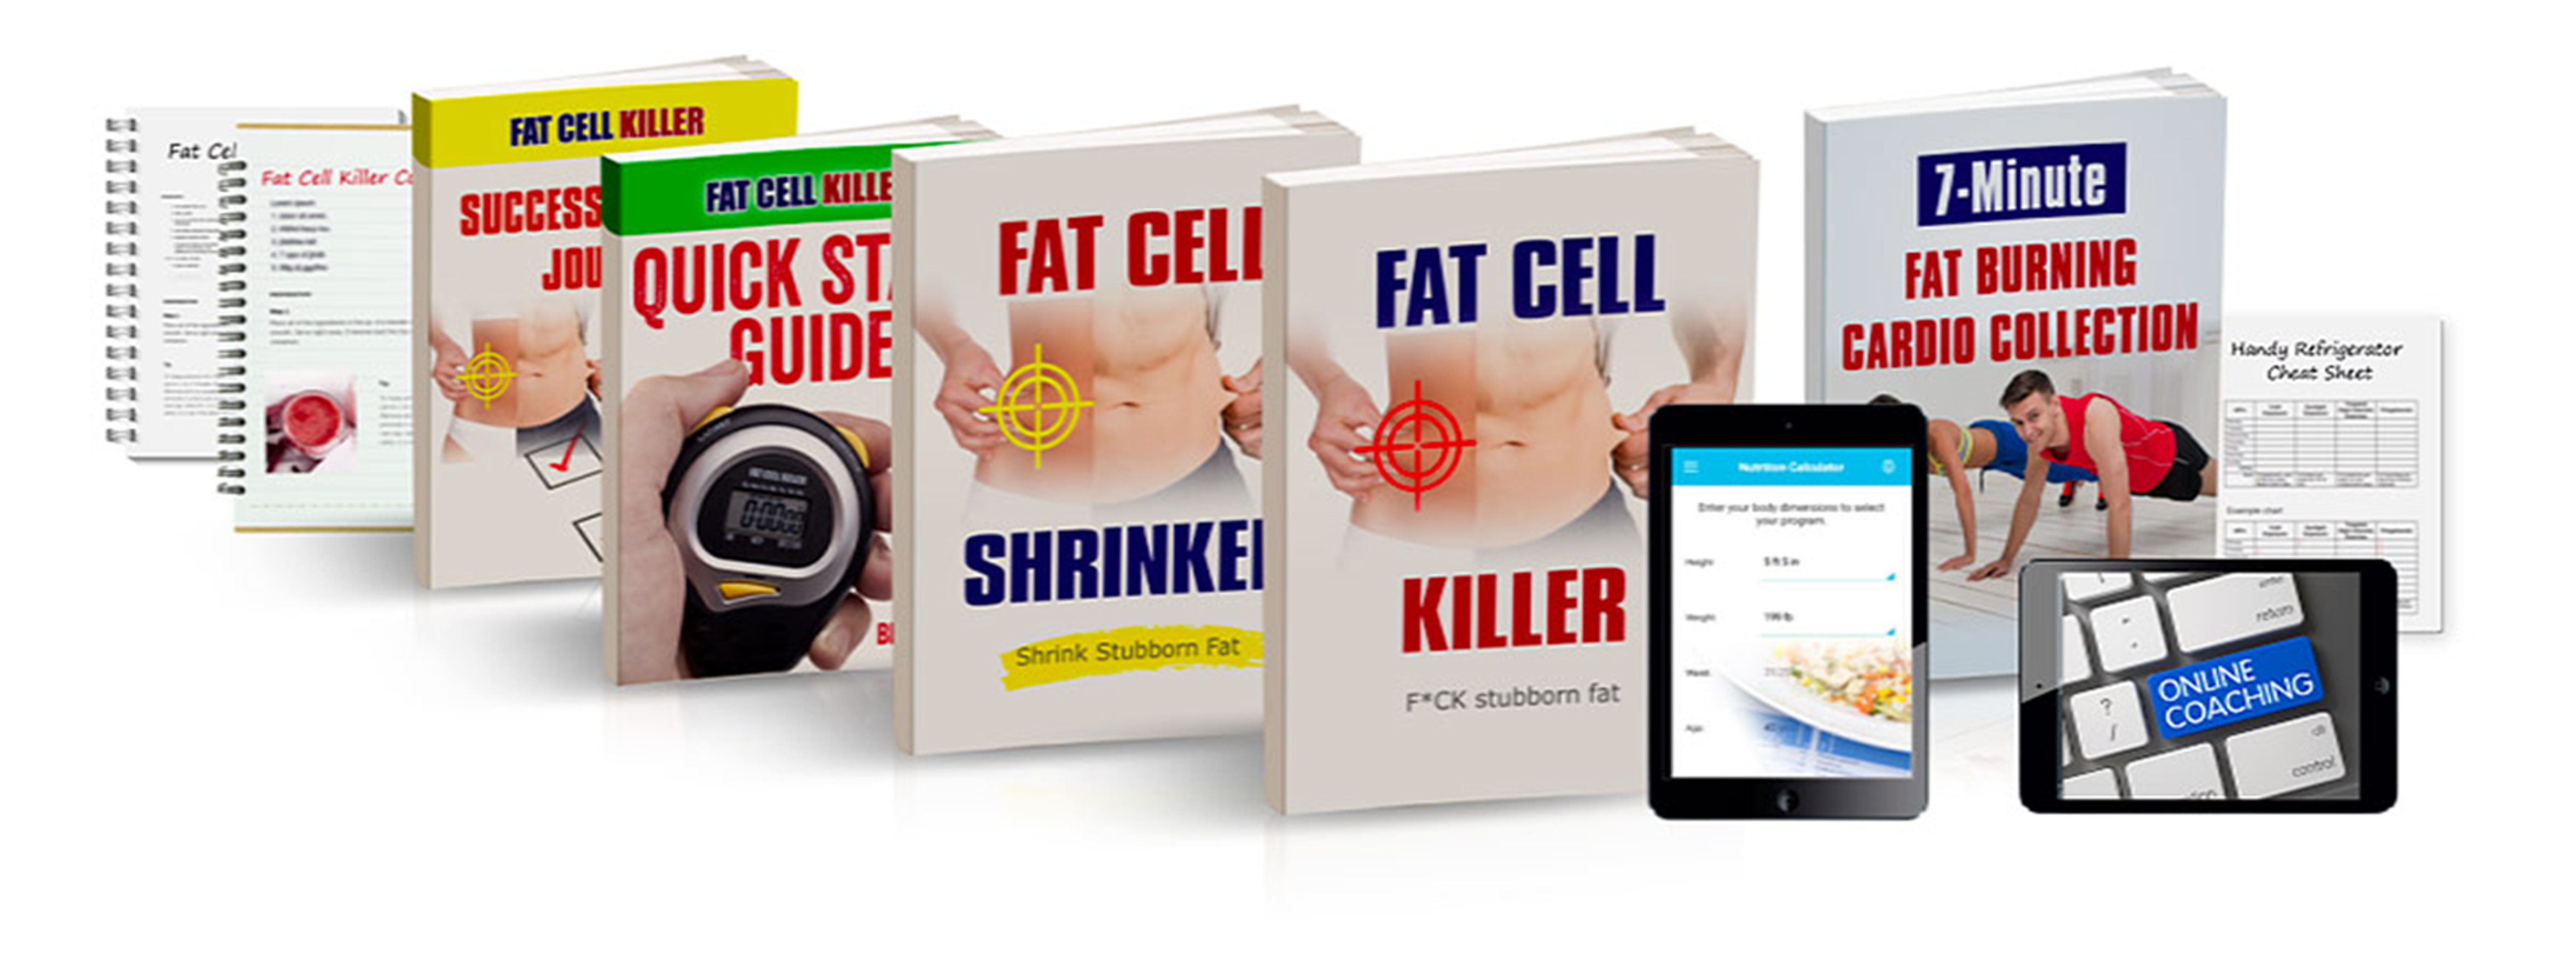 The-Fat-Cell-Killer-System-review